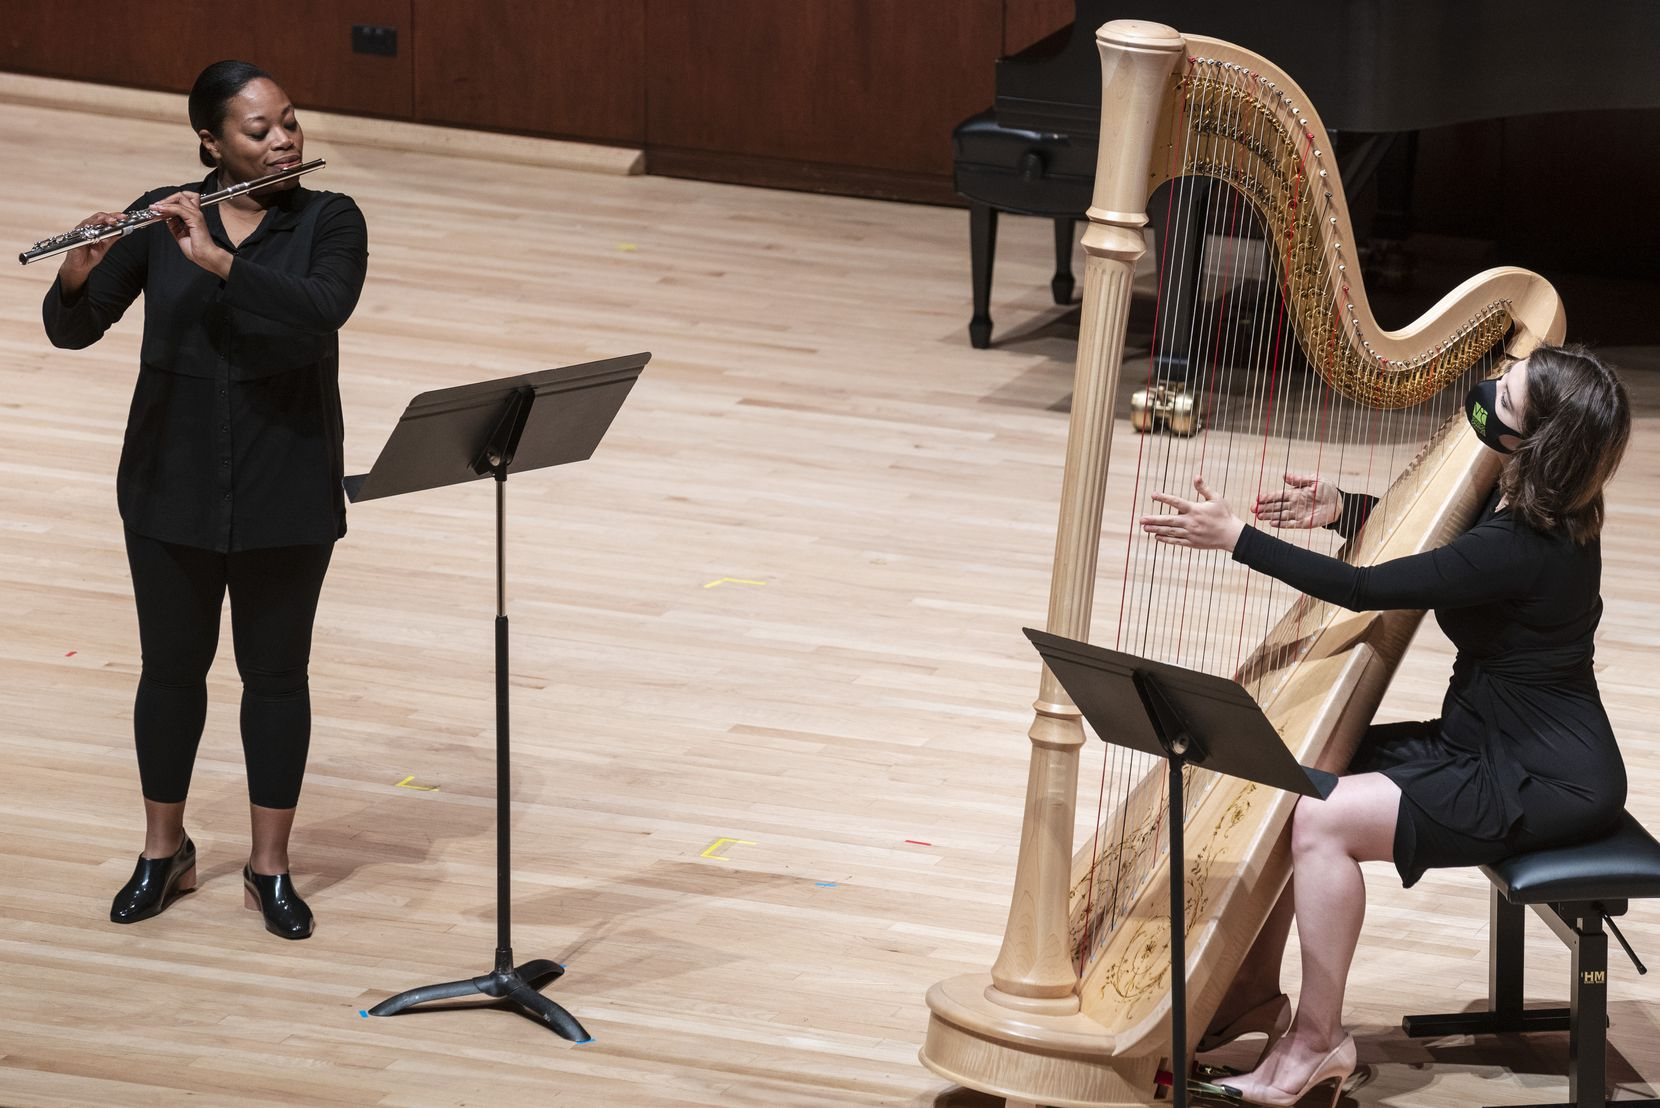 Flutist Ebonee Thomas and harpist Emily Levin perform 'Serenade No. 10,' for flute and harp, by Vincent Persichetti, at the Voices of Change concert on April 18 at Caruth Auditorium on the campus of Southern Methodist University in Dallas.